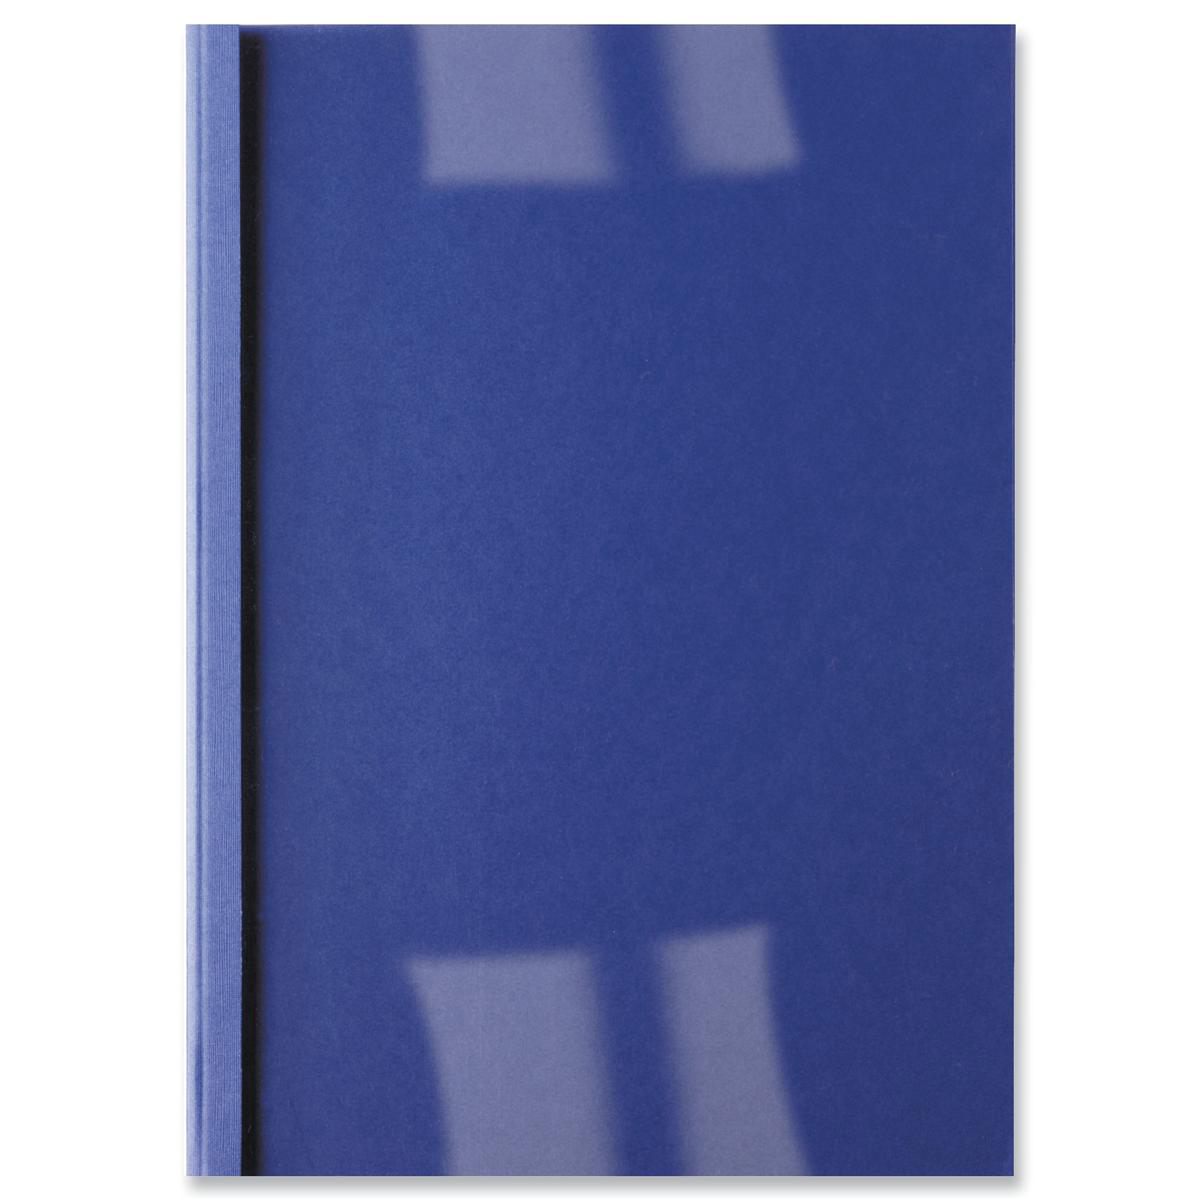 Thermal Bind Covers GBC Thermal Binding Covers 1.5mm Front PVC Clear Back Leathergrain A4 Royal Blue Ref IB451003 Pack 100